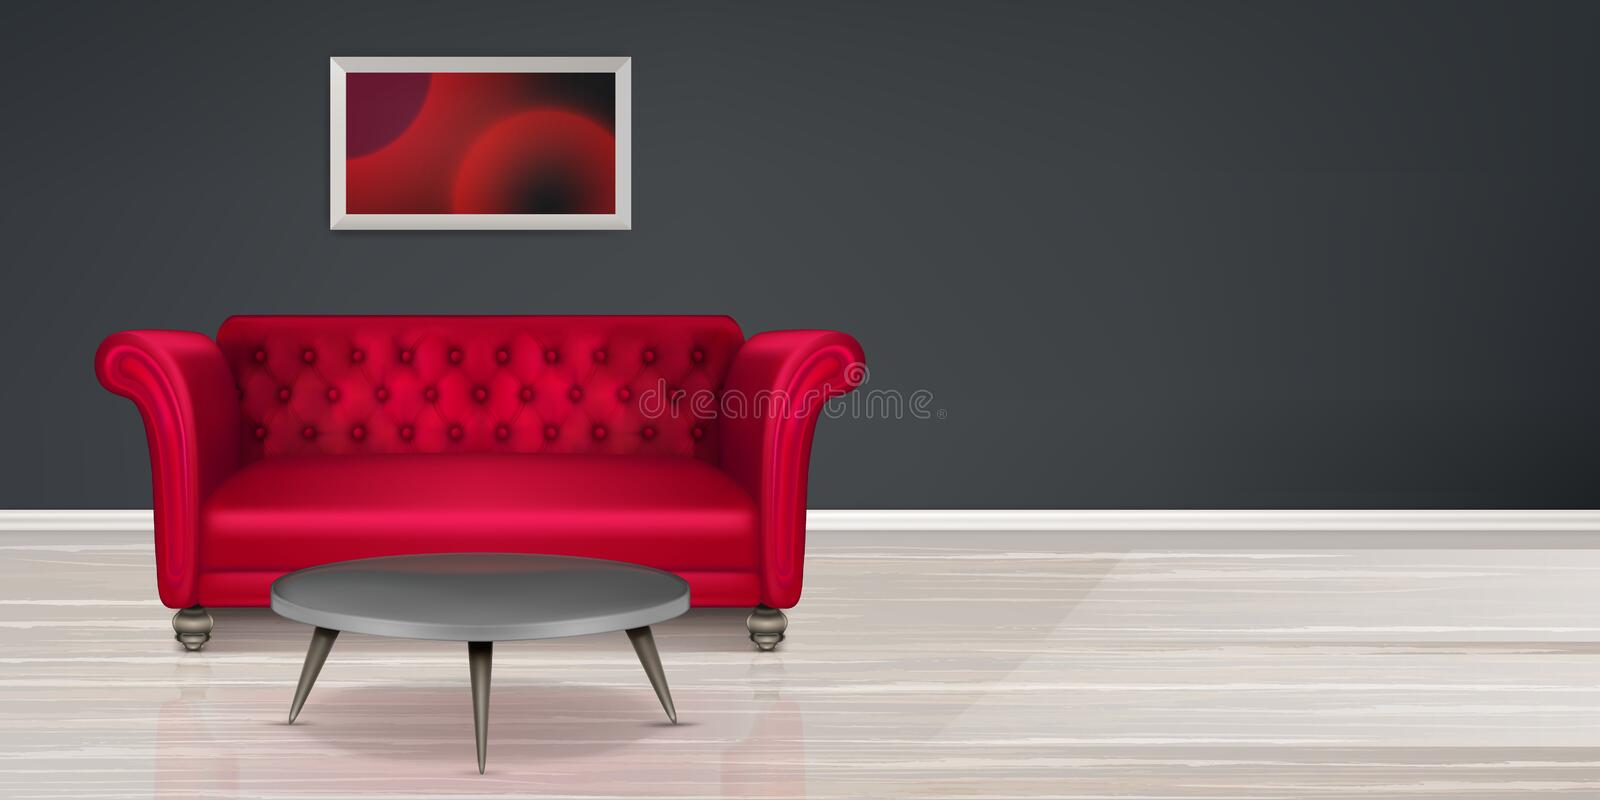 Red couch, sofa modern dwelling interior design. Room with red couch, empty interior with buttoned leather sofa, coffee table and painting, black wall and light stock illustration